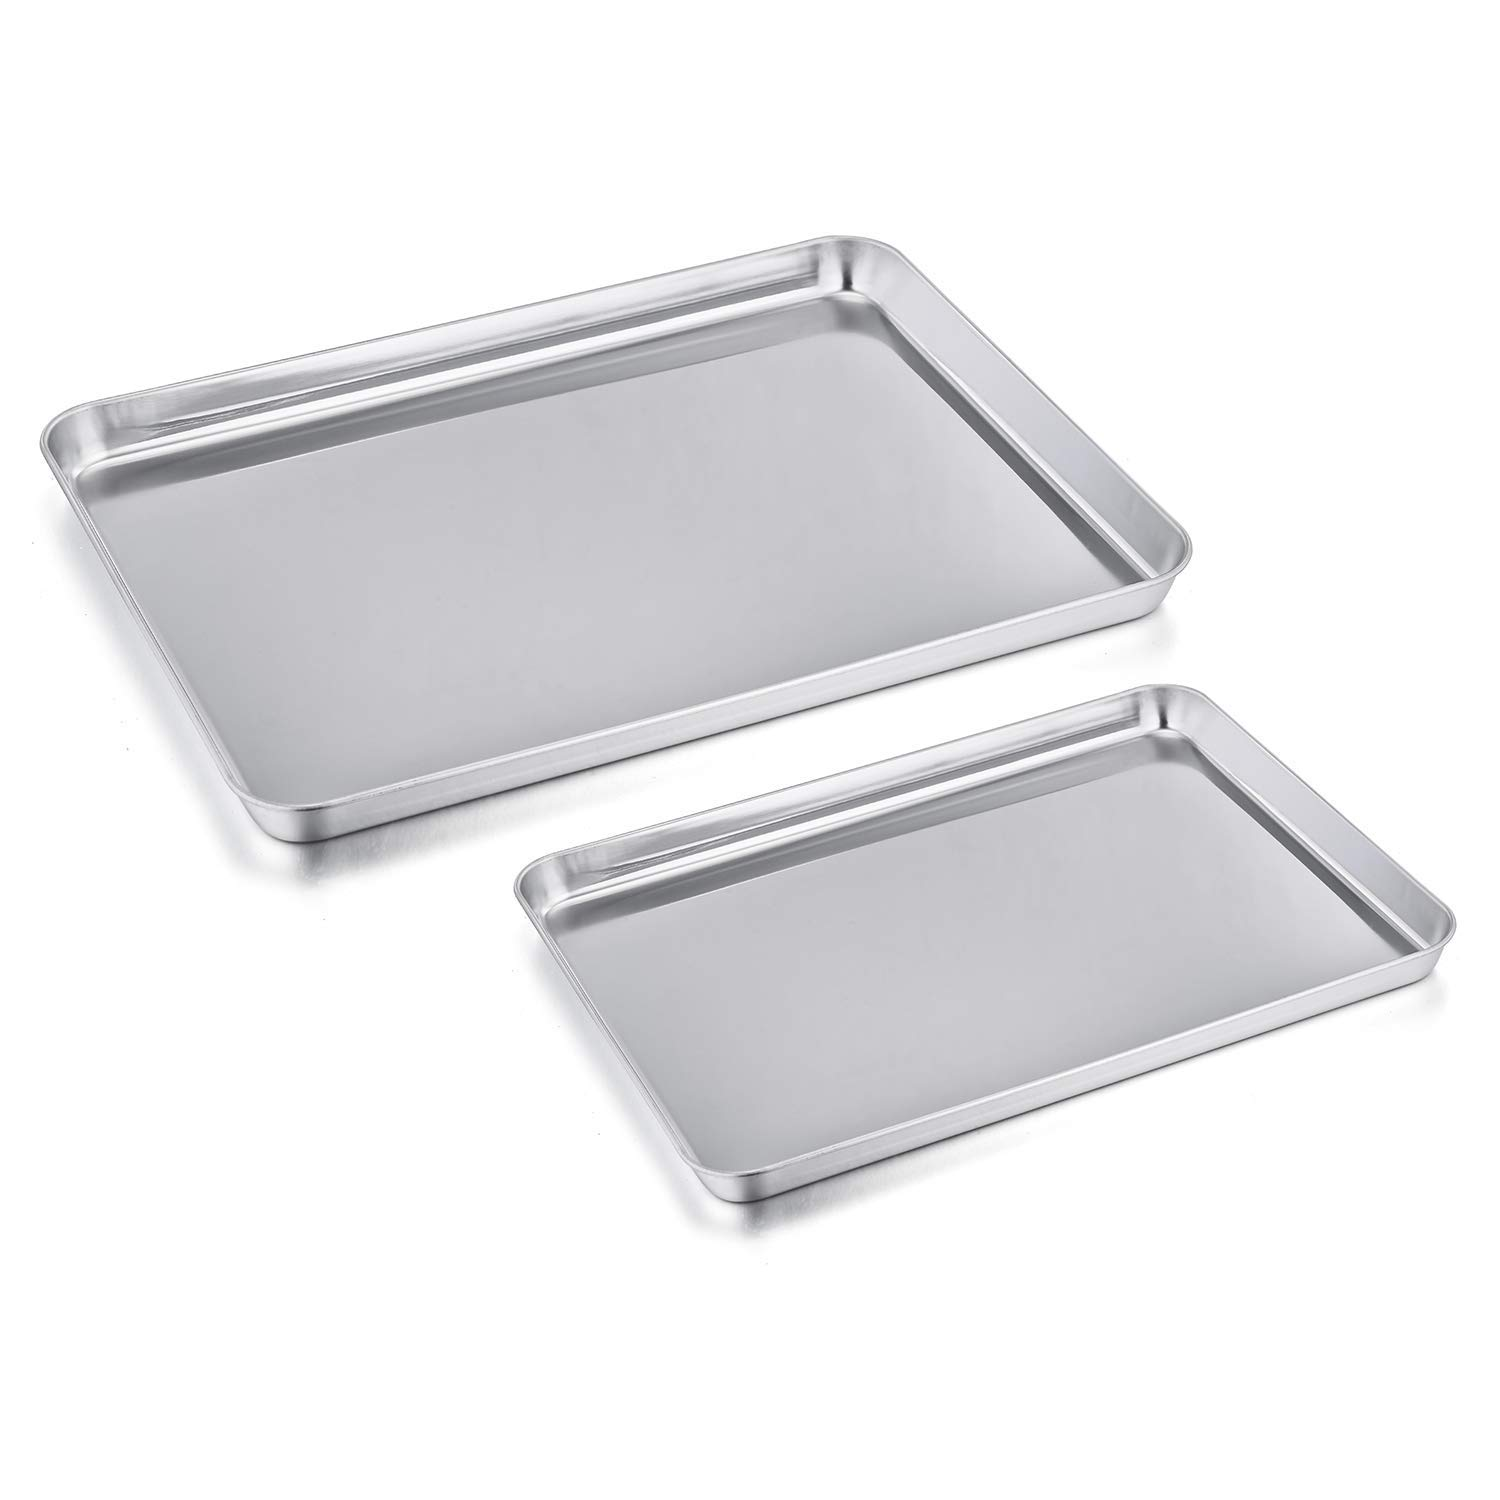 Toaster Oven Pan Tray Set of 2, P&P CHEF Stainless Steel Small Baking Sheets Pans, Rectangle Shape & Deep Rim, Non Toxic & Dishwasher Safe, 12.5 inch & 9 inch (Renewed)